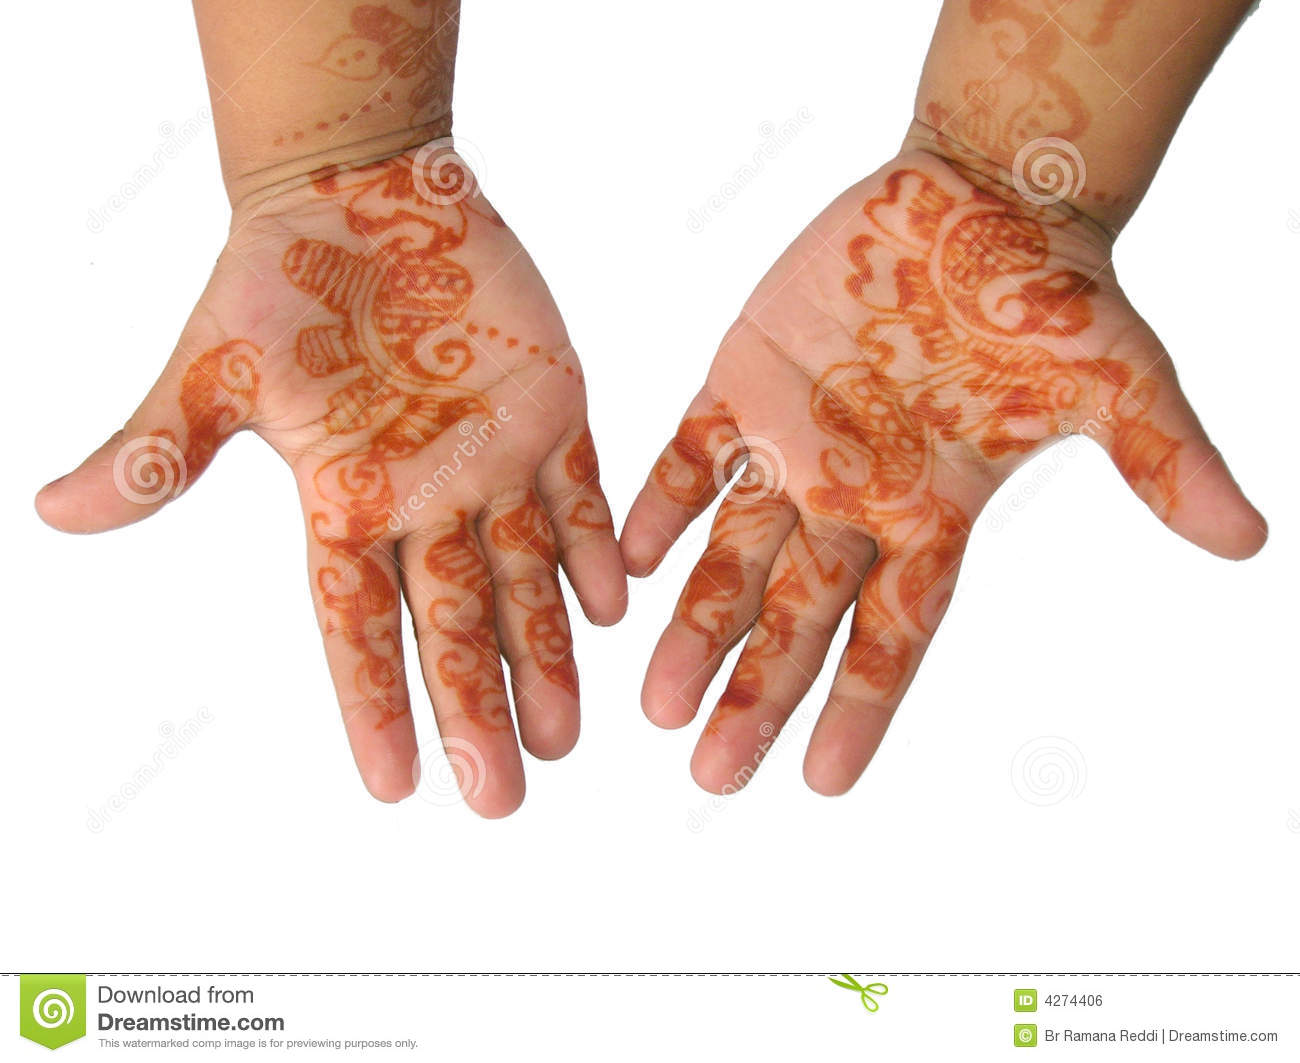 Henna Tattoo Reactions - eMedicineHealth